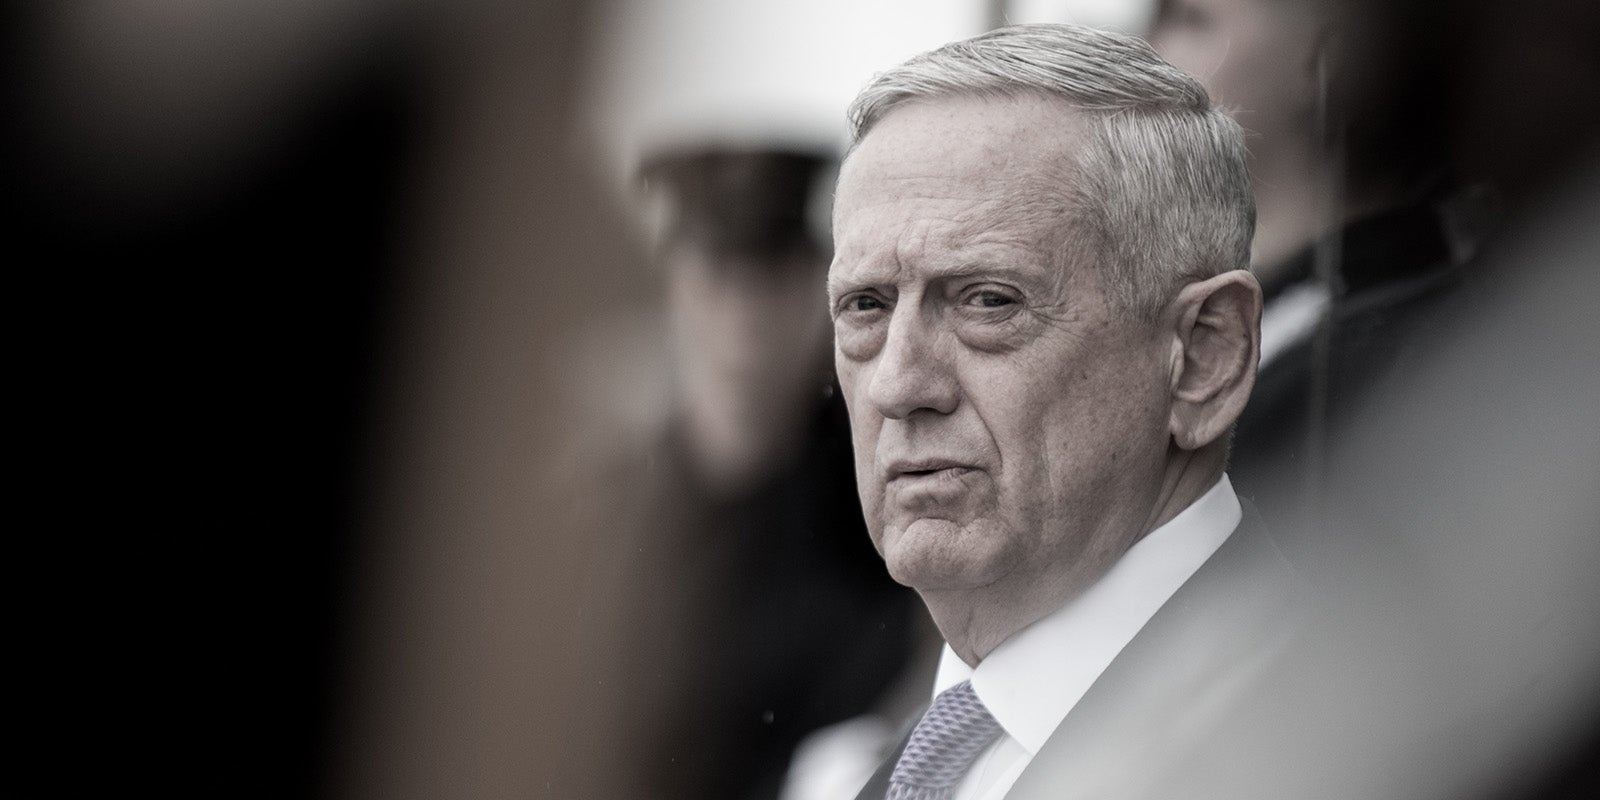 Mattis issues a grave warning: We're in danger of destroying our democracy